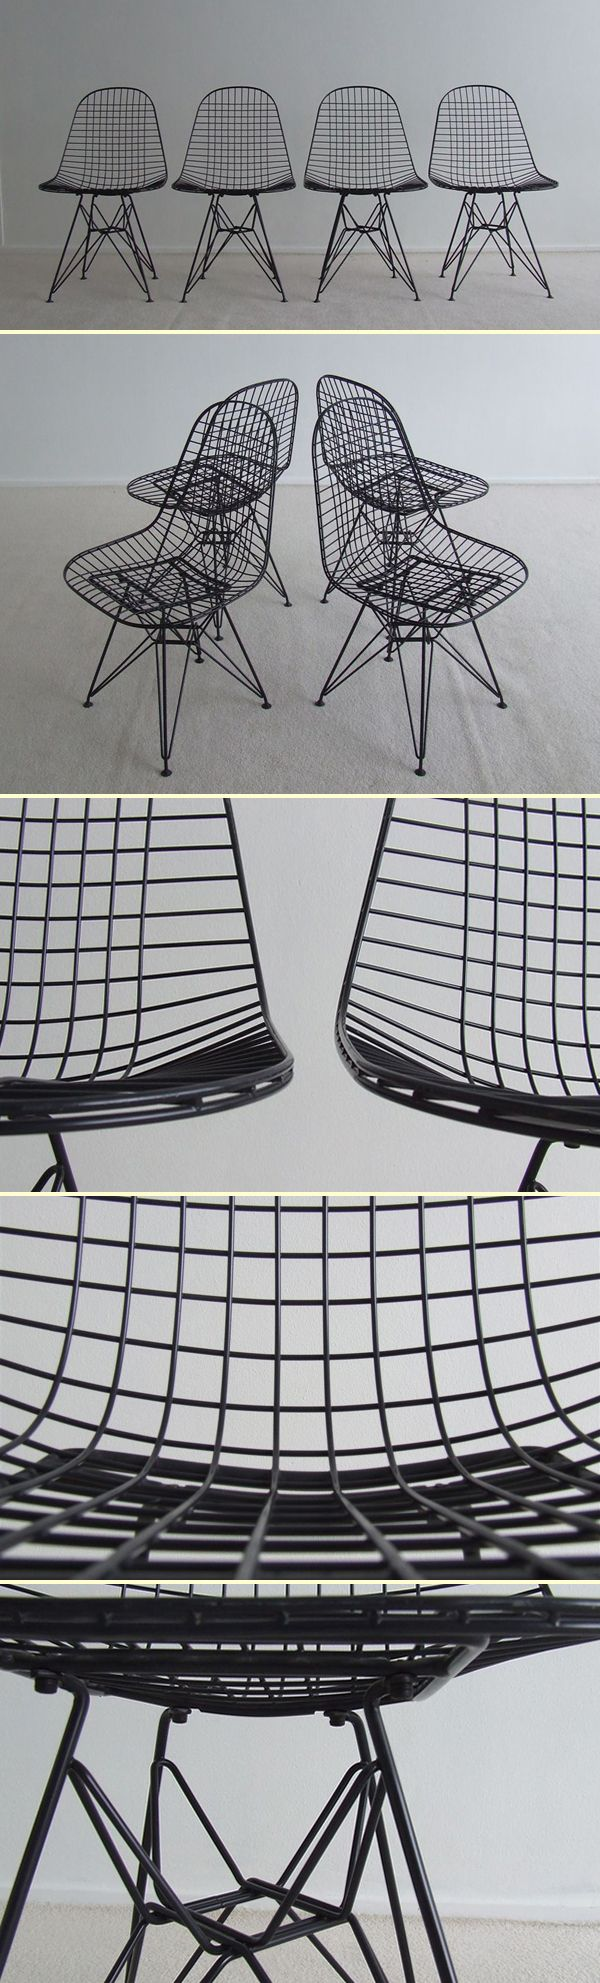 Four Charles Eames Eiffel Wire chairs (1364)                                                                                                                                                                                 More